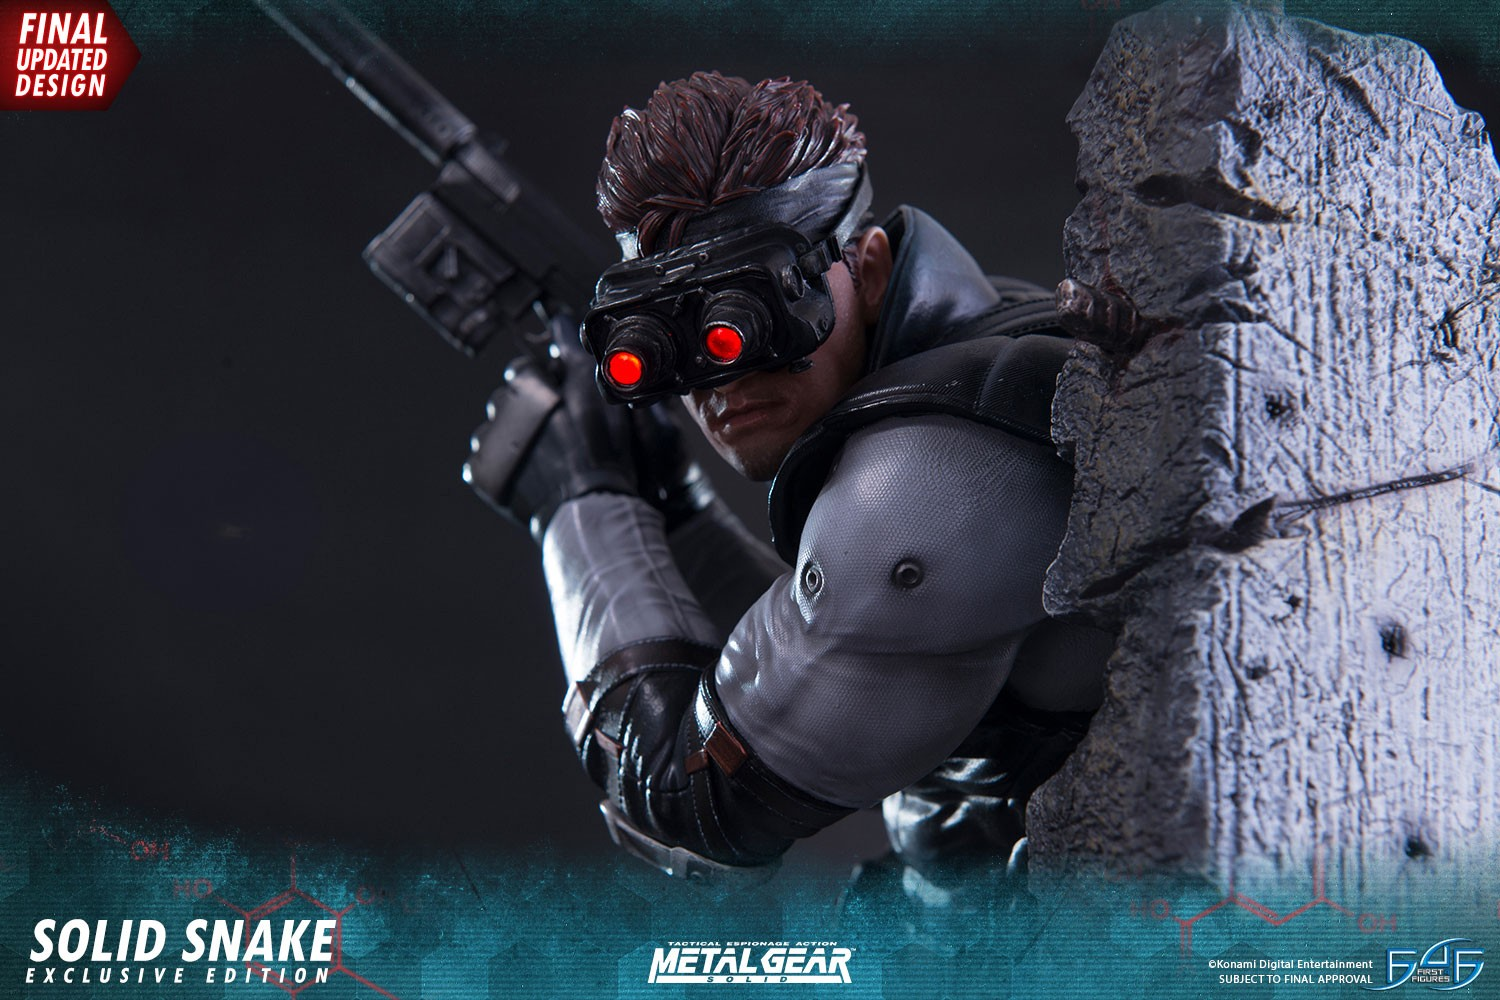 Solid Snake Exclusive